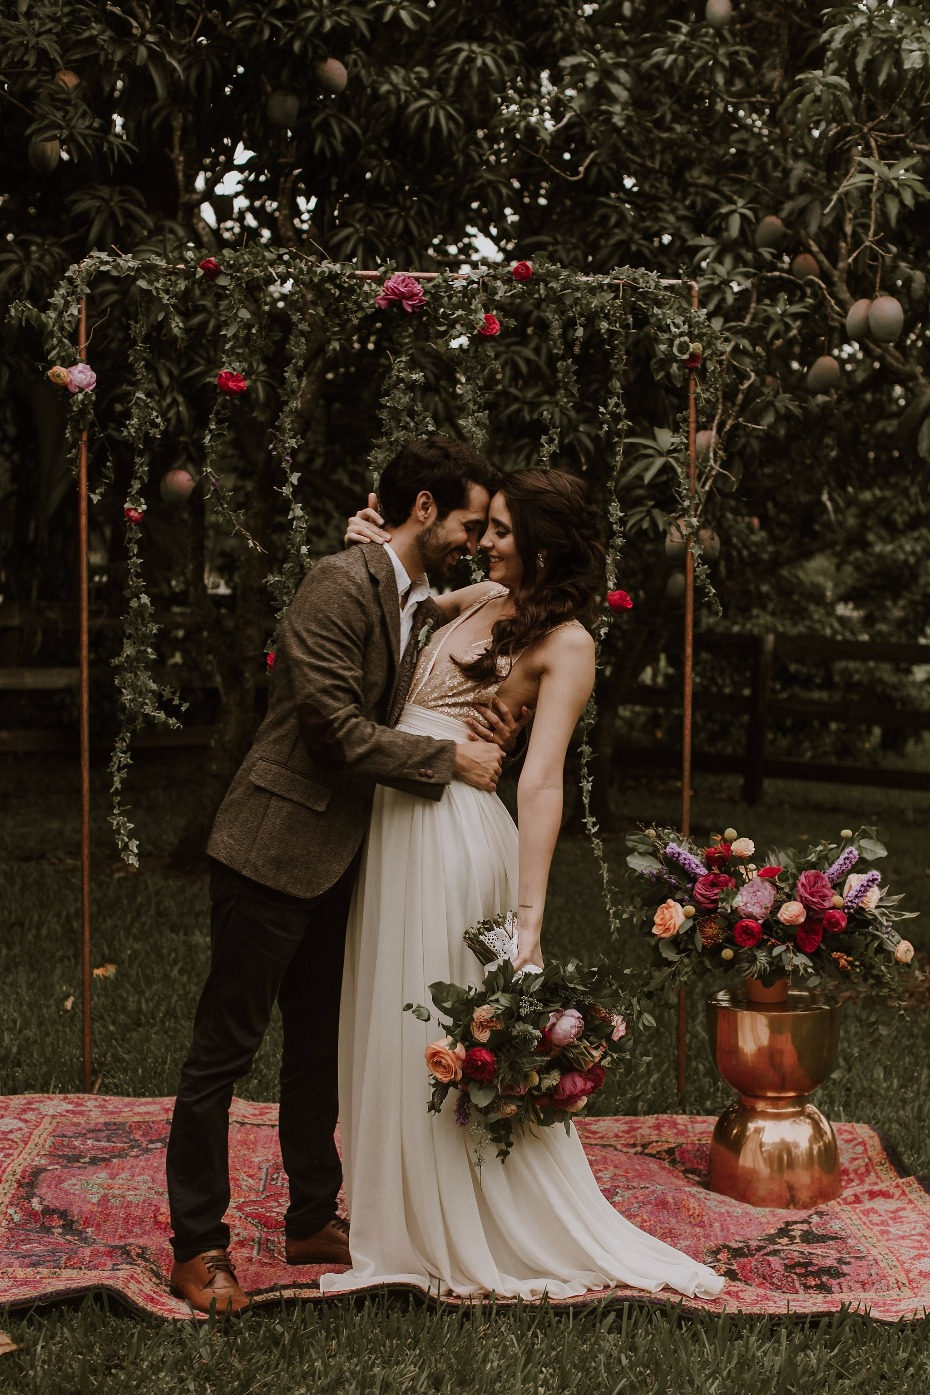 Colorful boho wedding ideas for the fearless bride